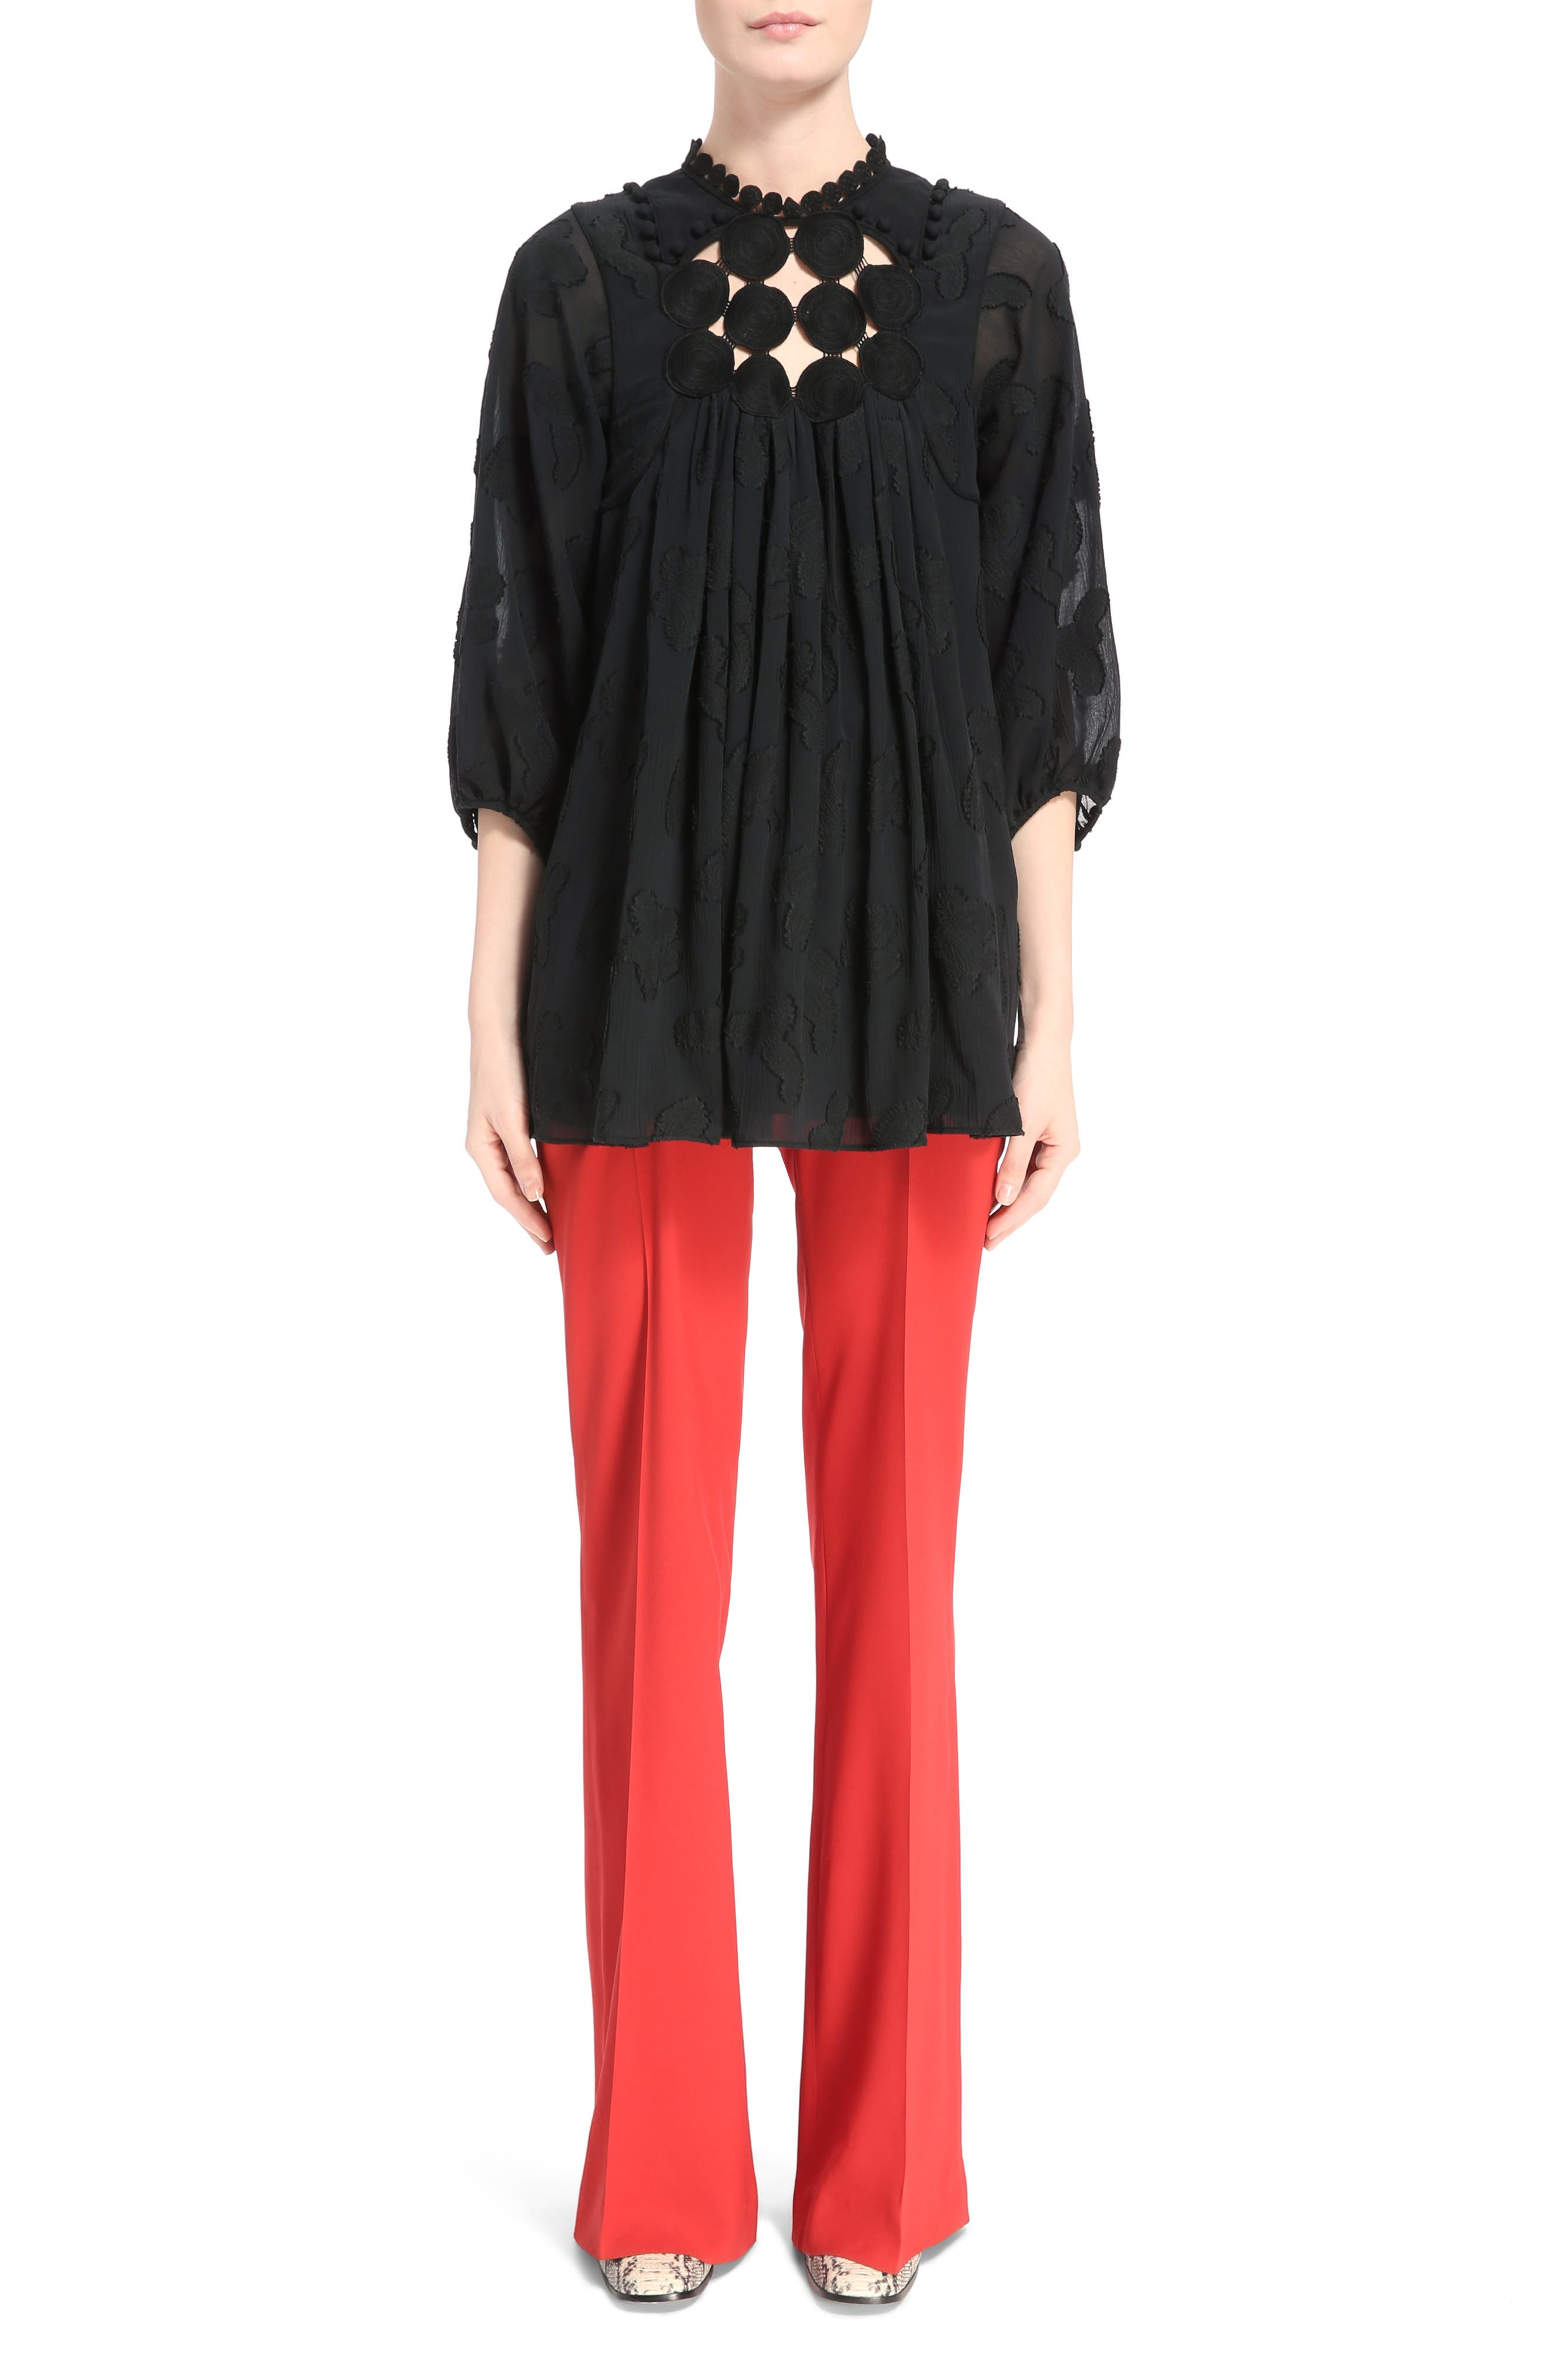 Cady Flare Suiting Pants,                             Alternate thumbnail 6, color,                             Ginger Red